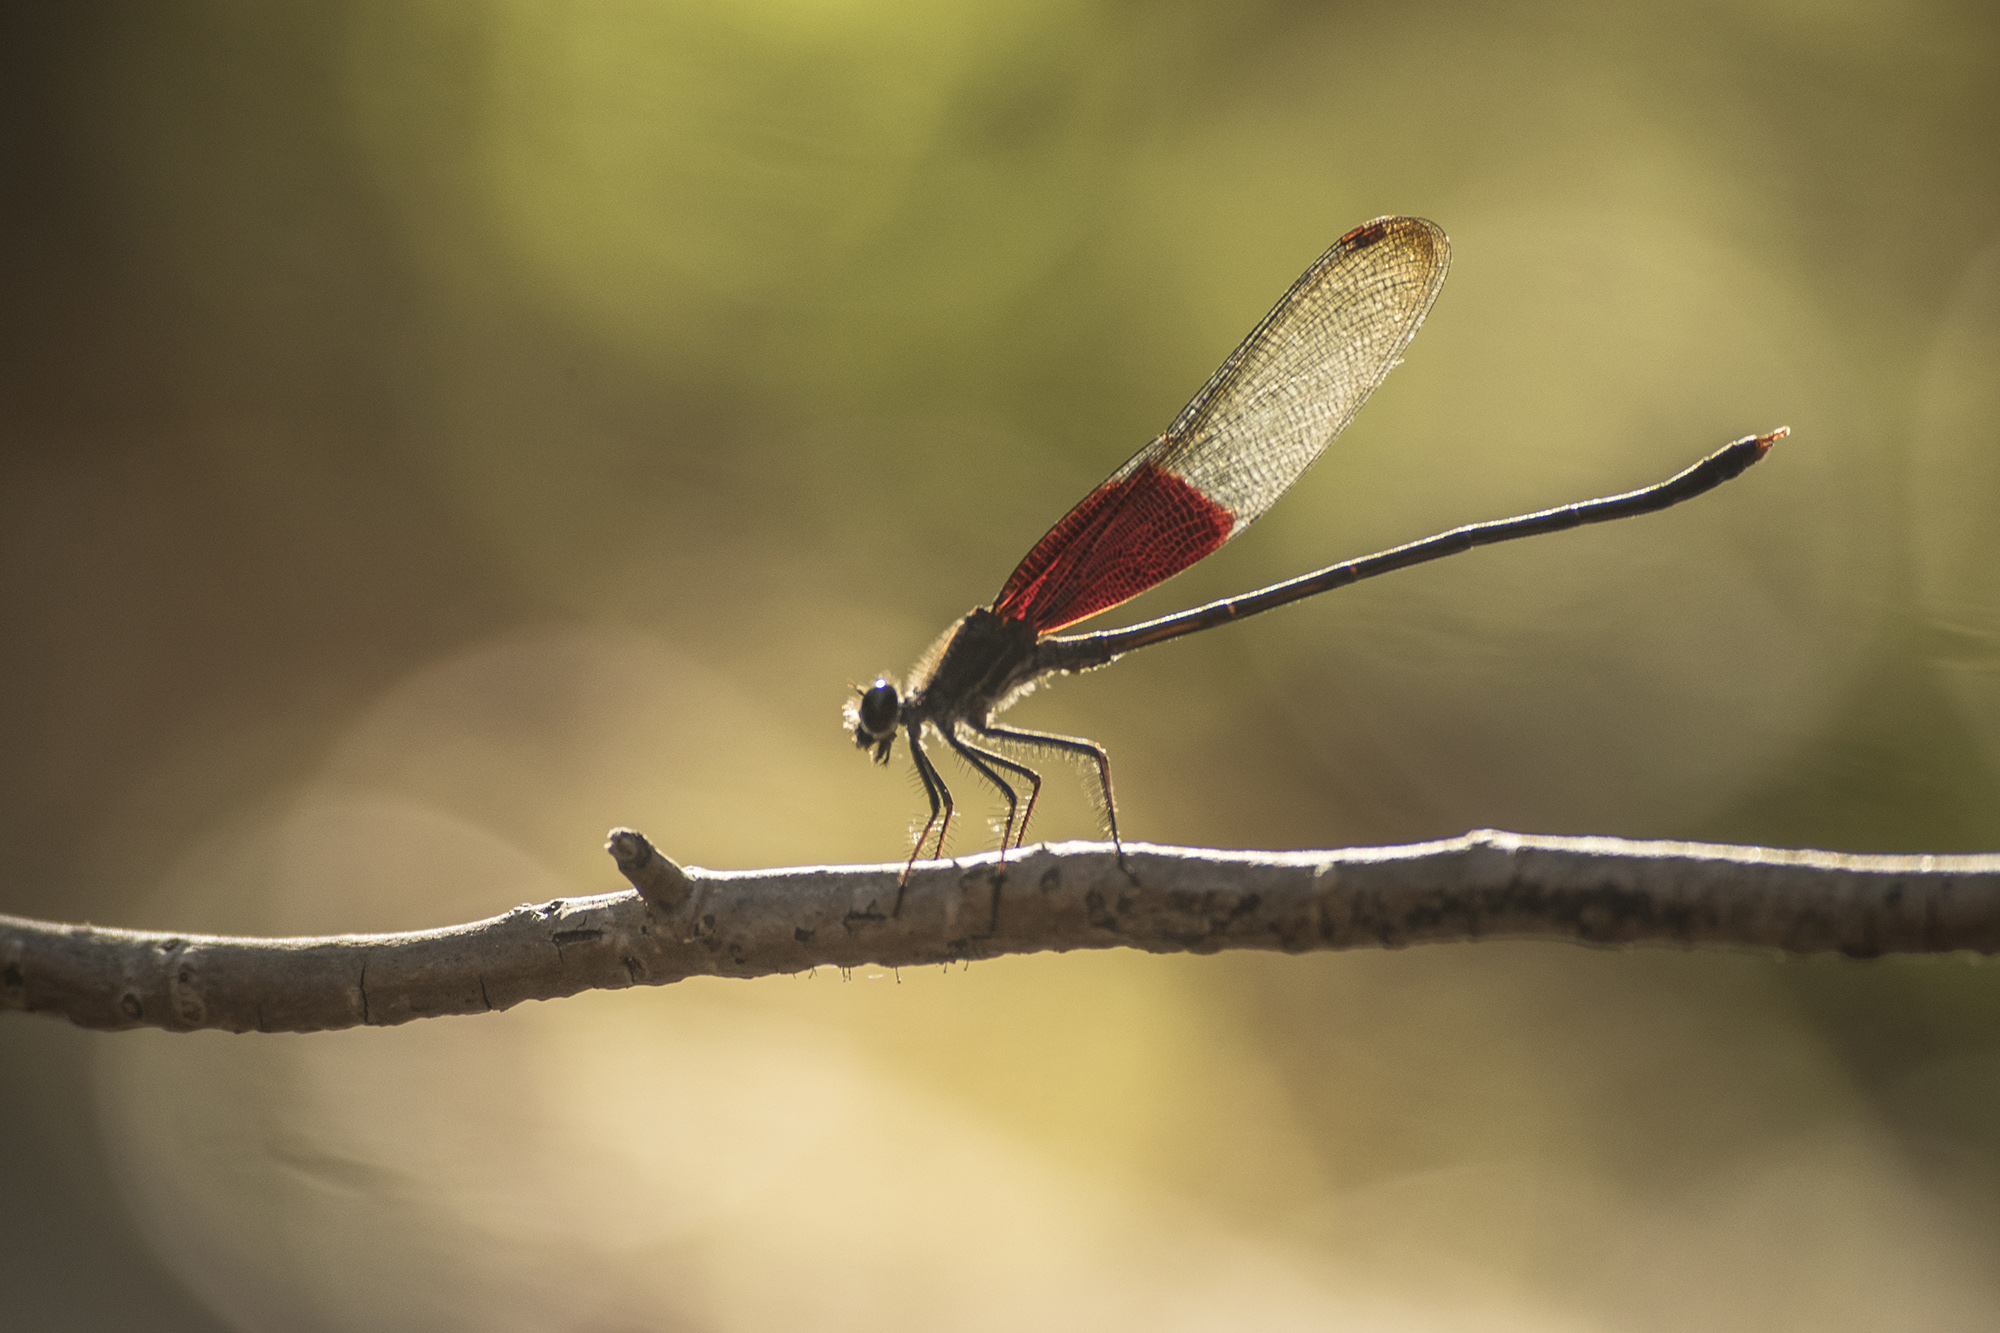 red winged dragonfly perched on a twig